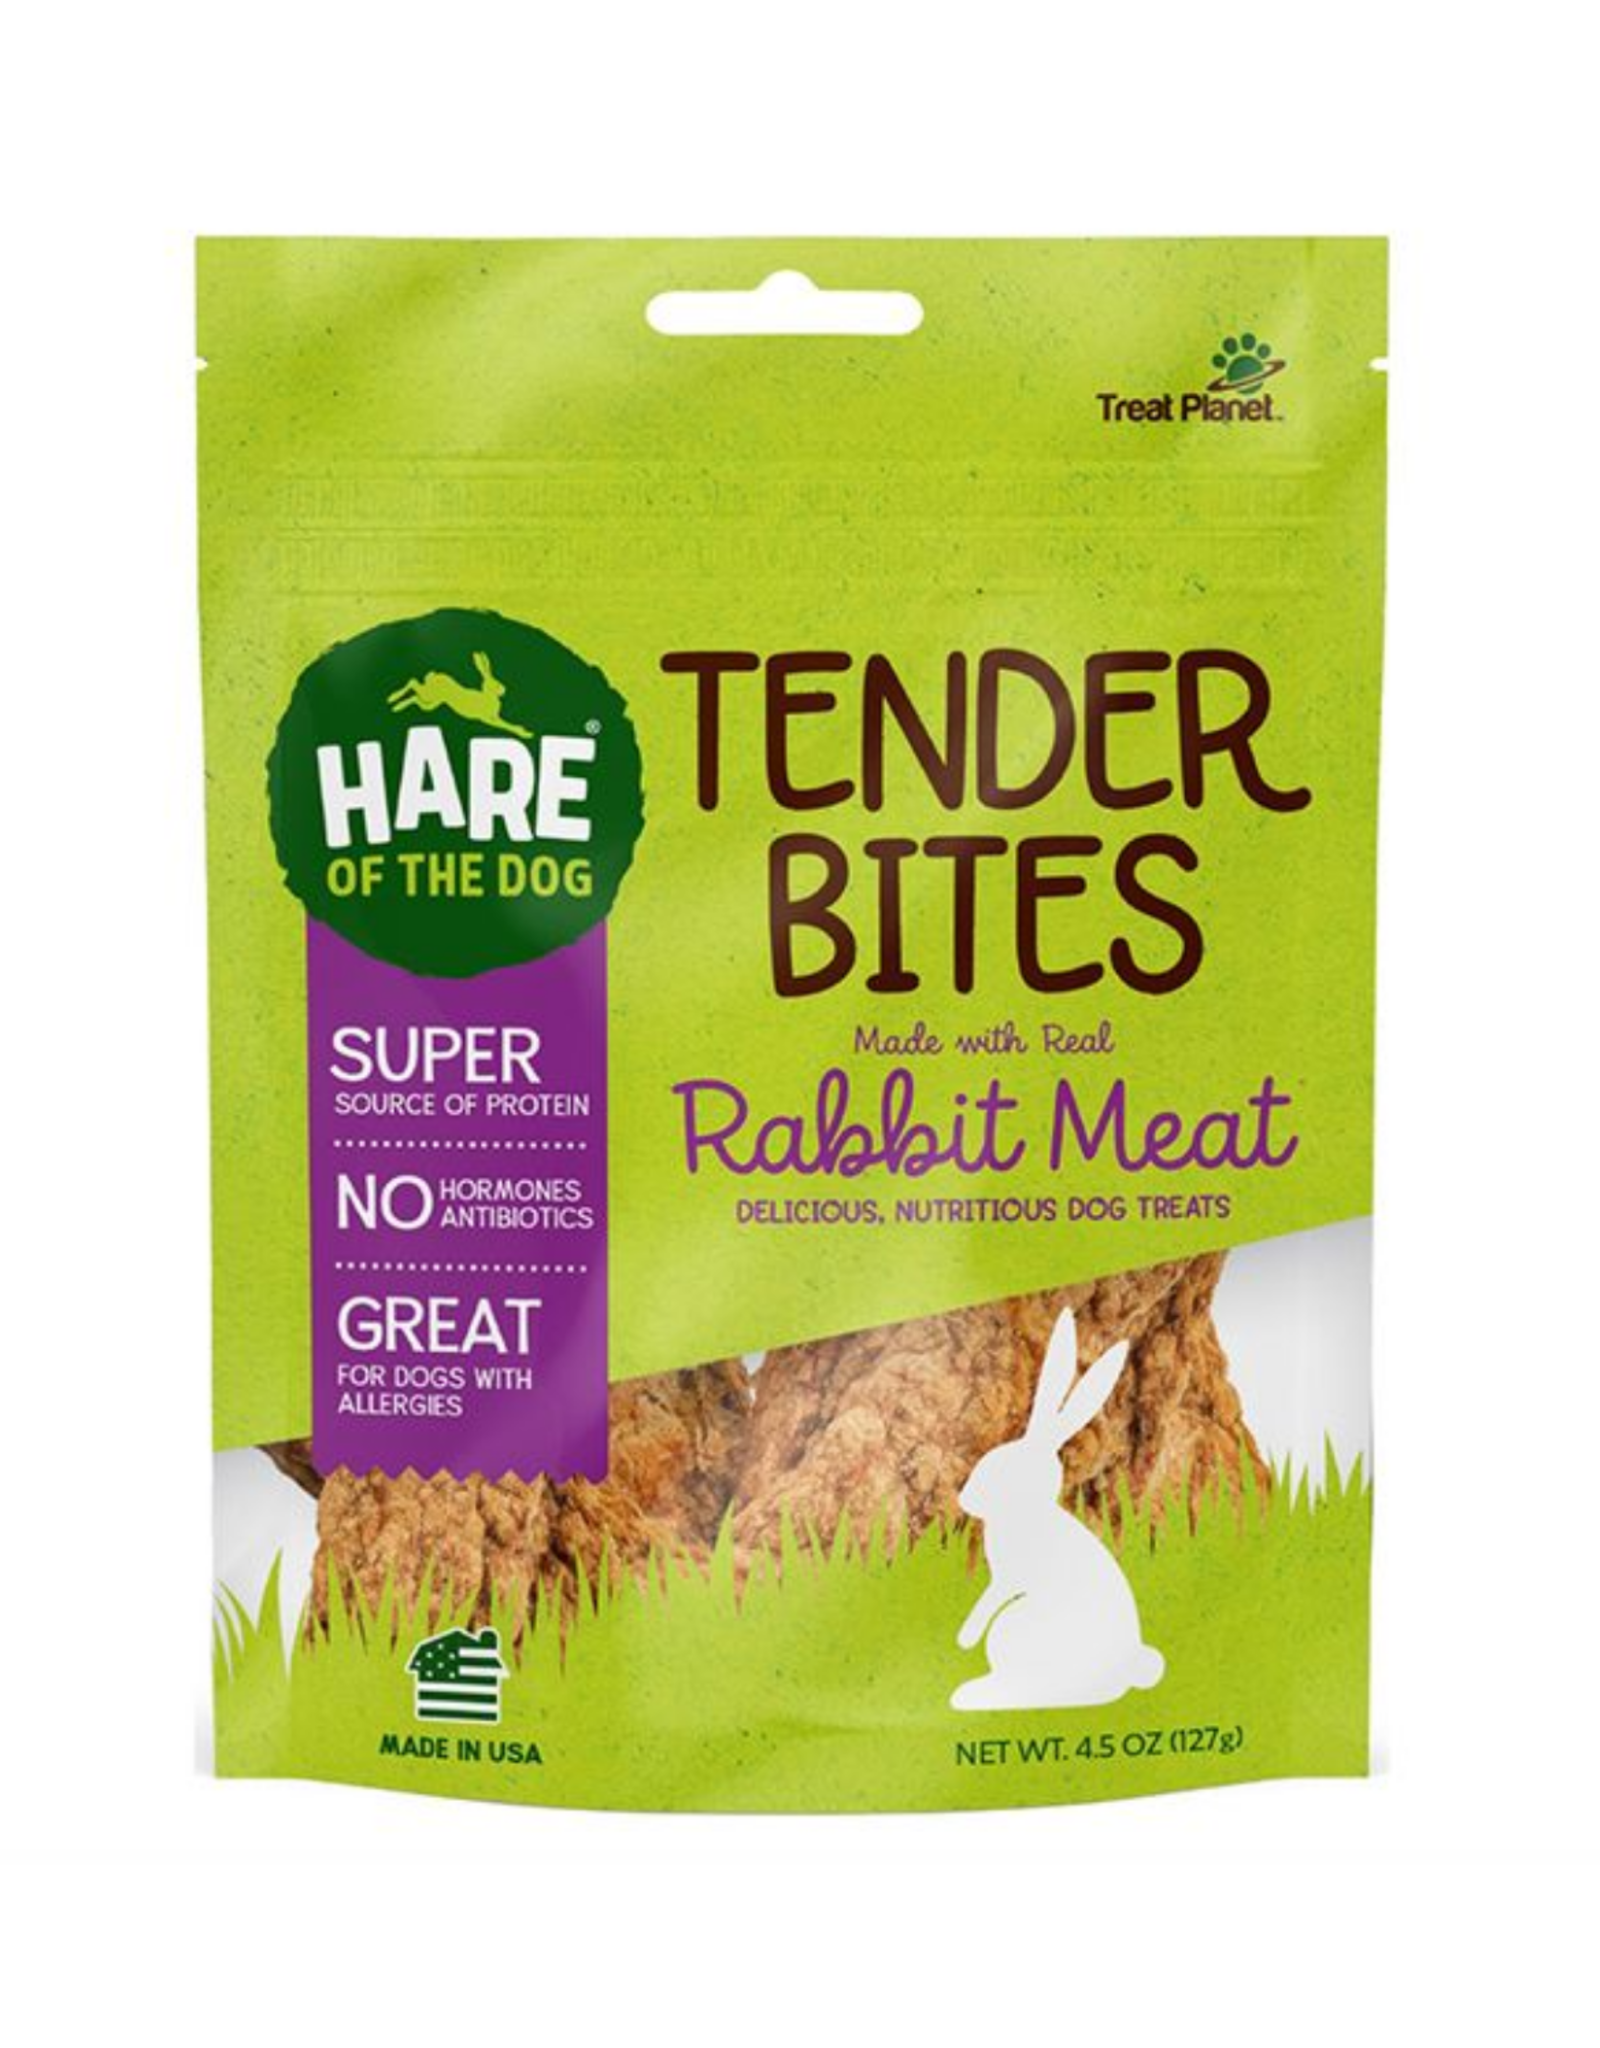 HARE OF THE DOG HARE OF THE DOG TENDER BITES